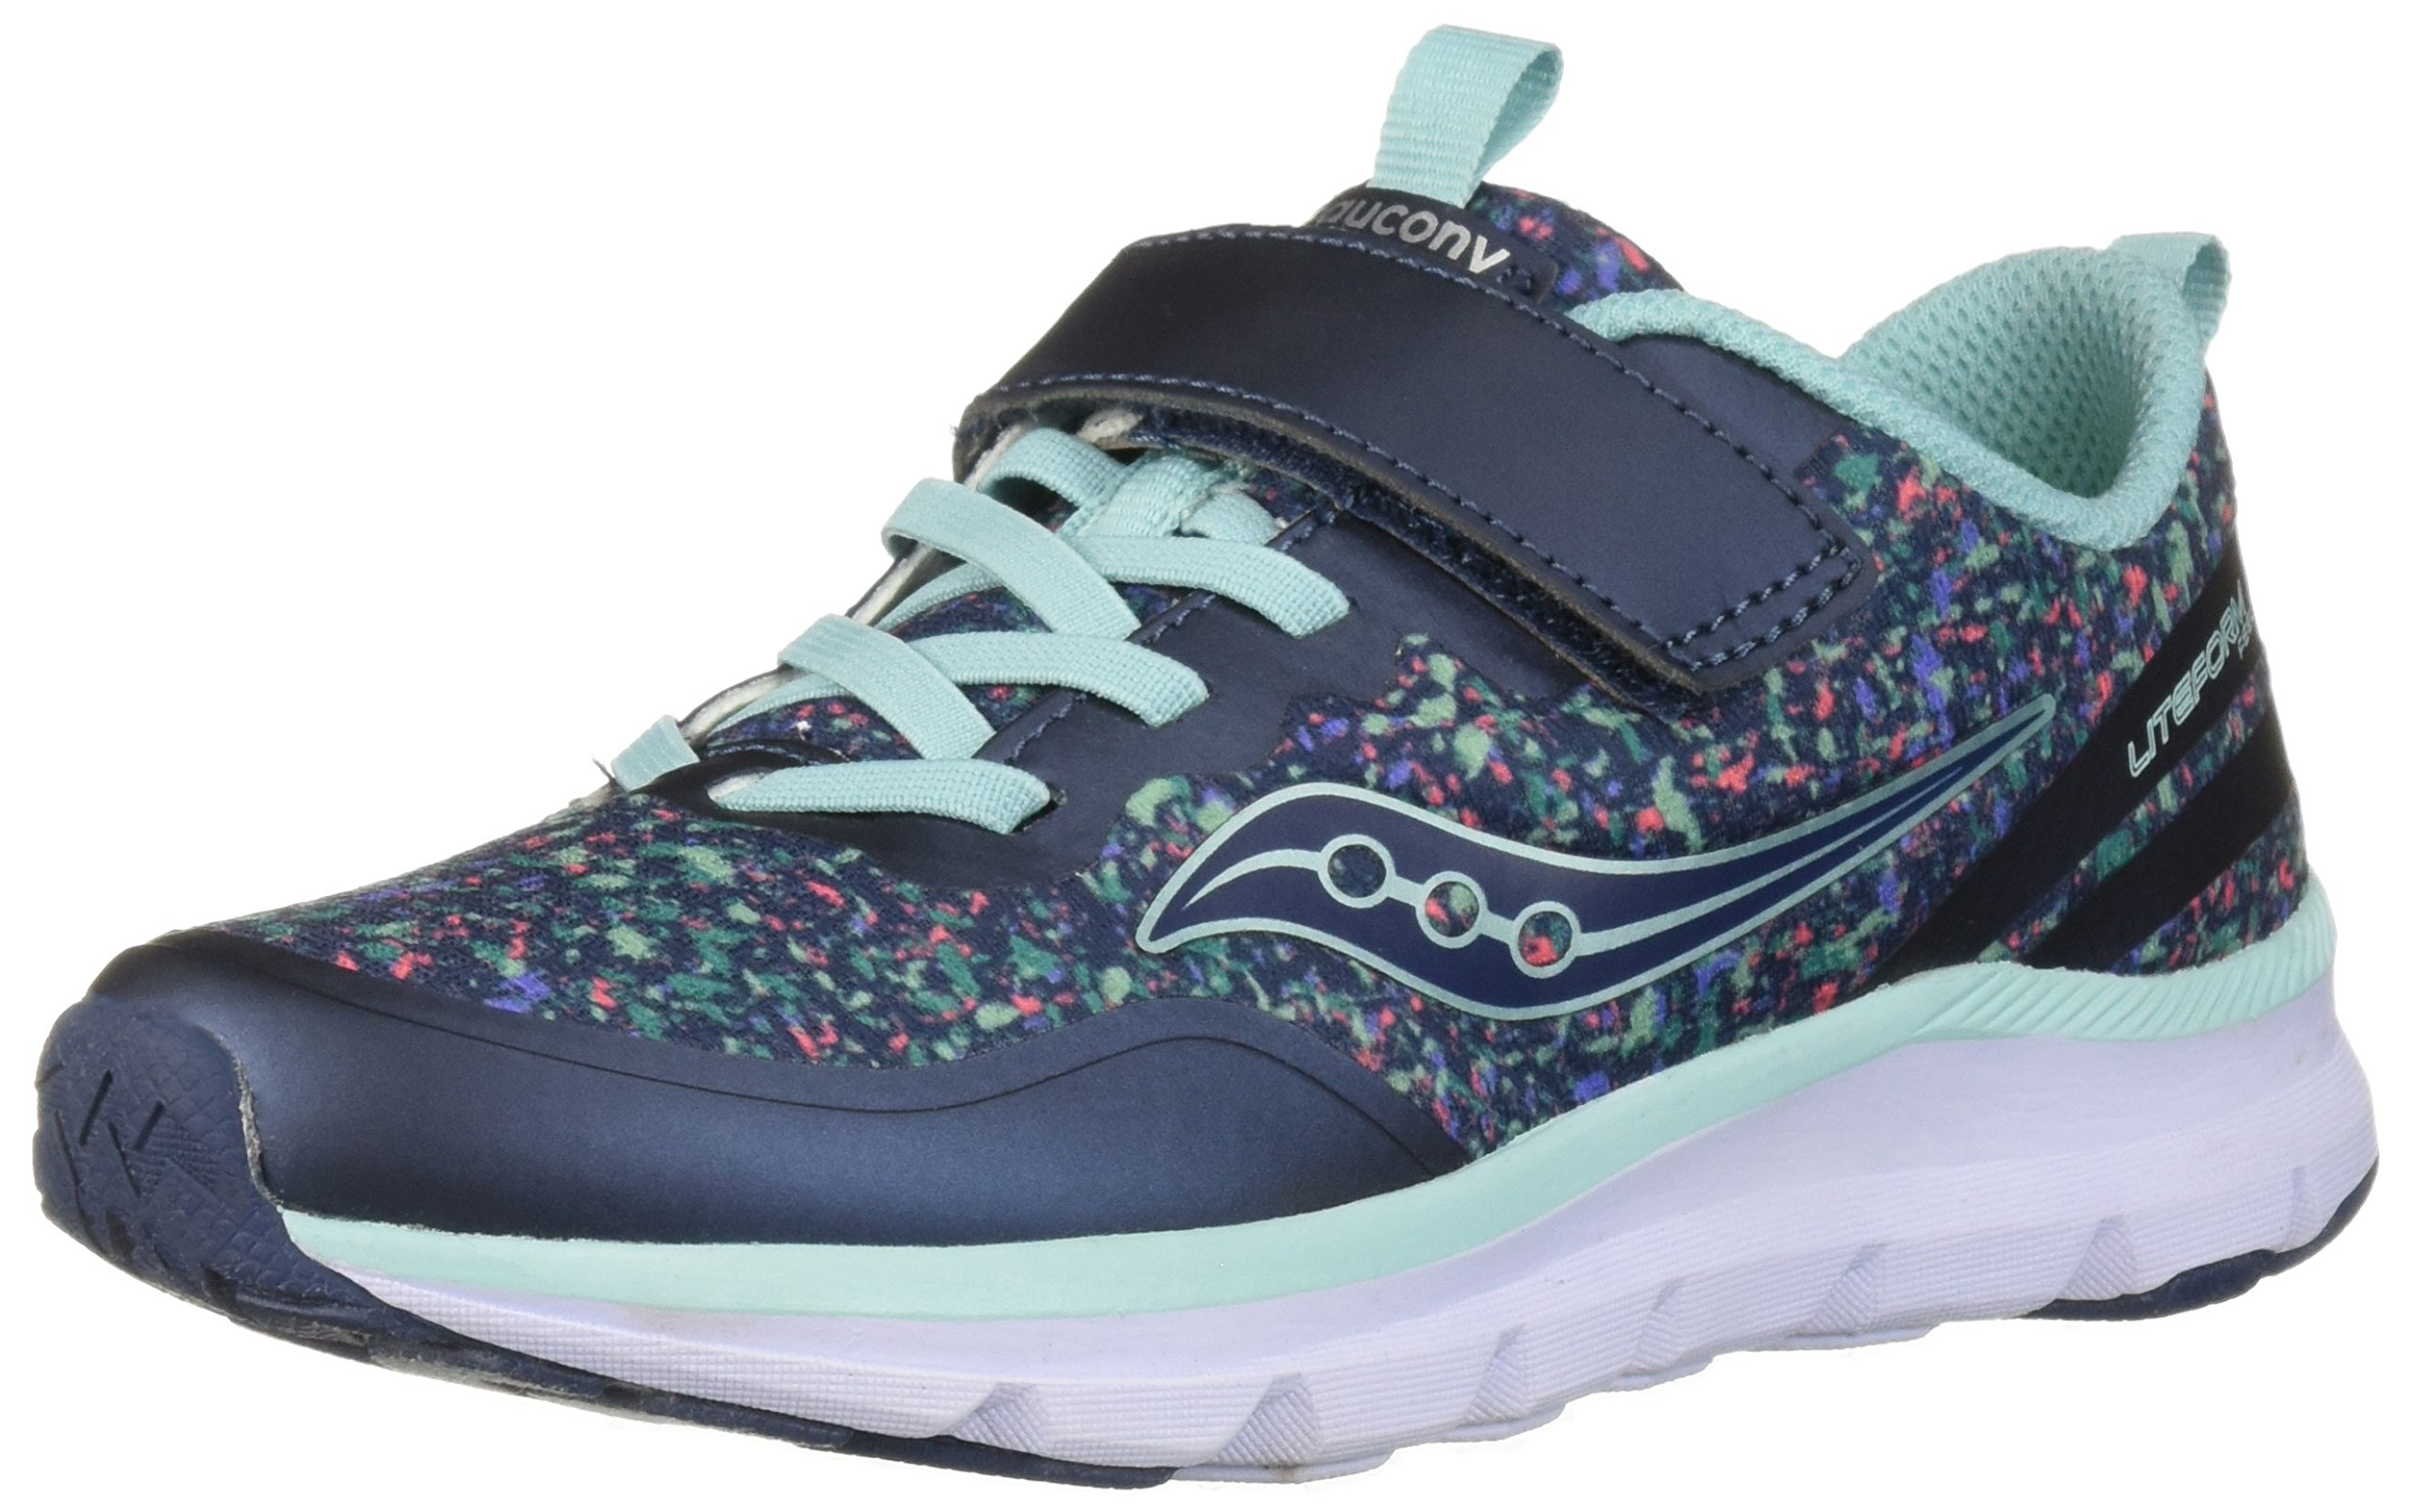 Saucony Girls' Liteform Feel A/C